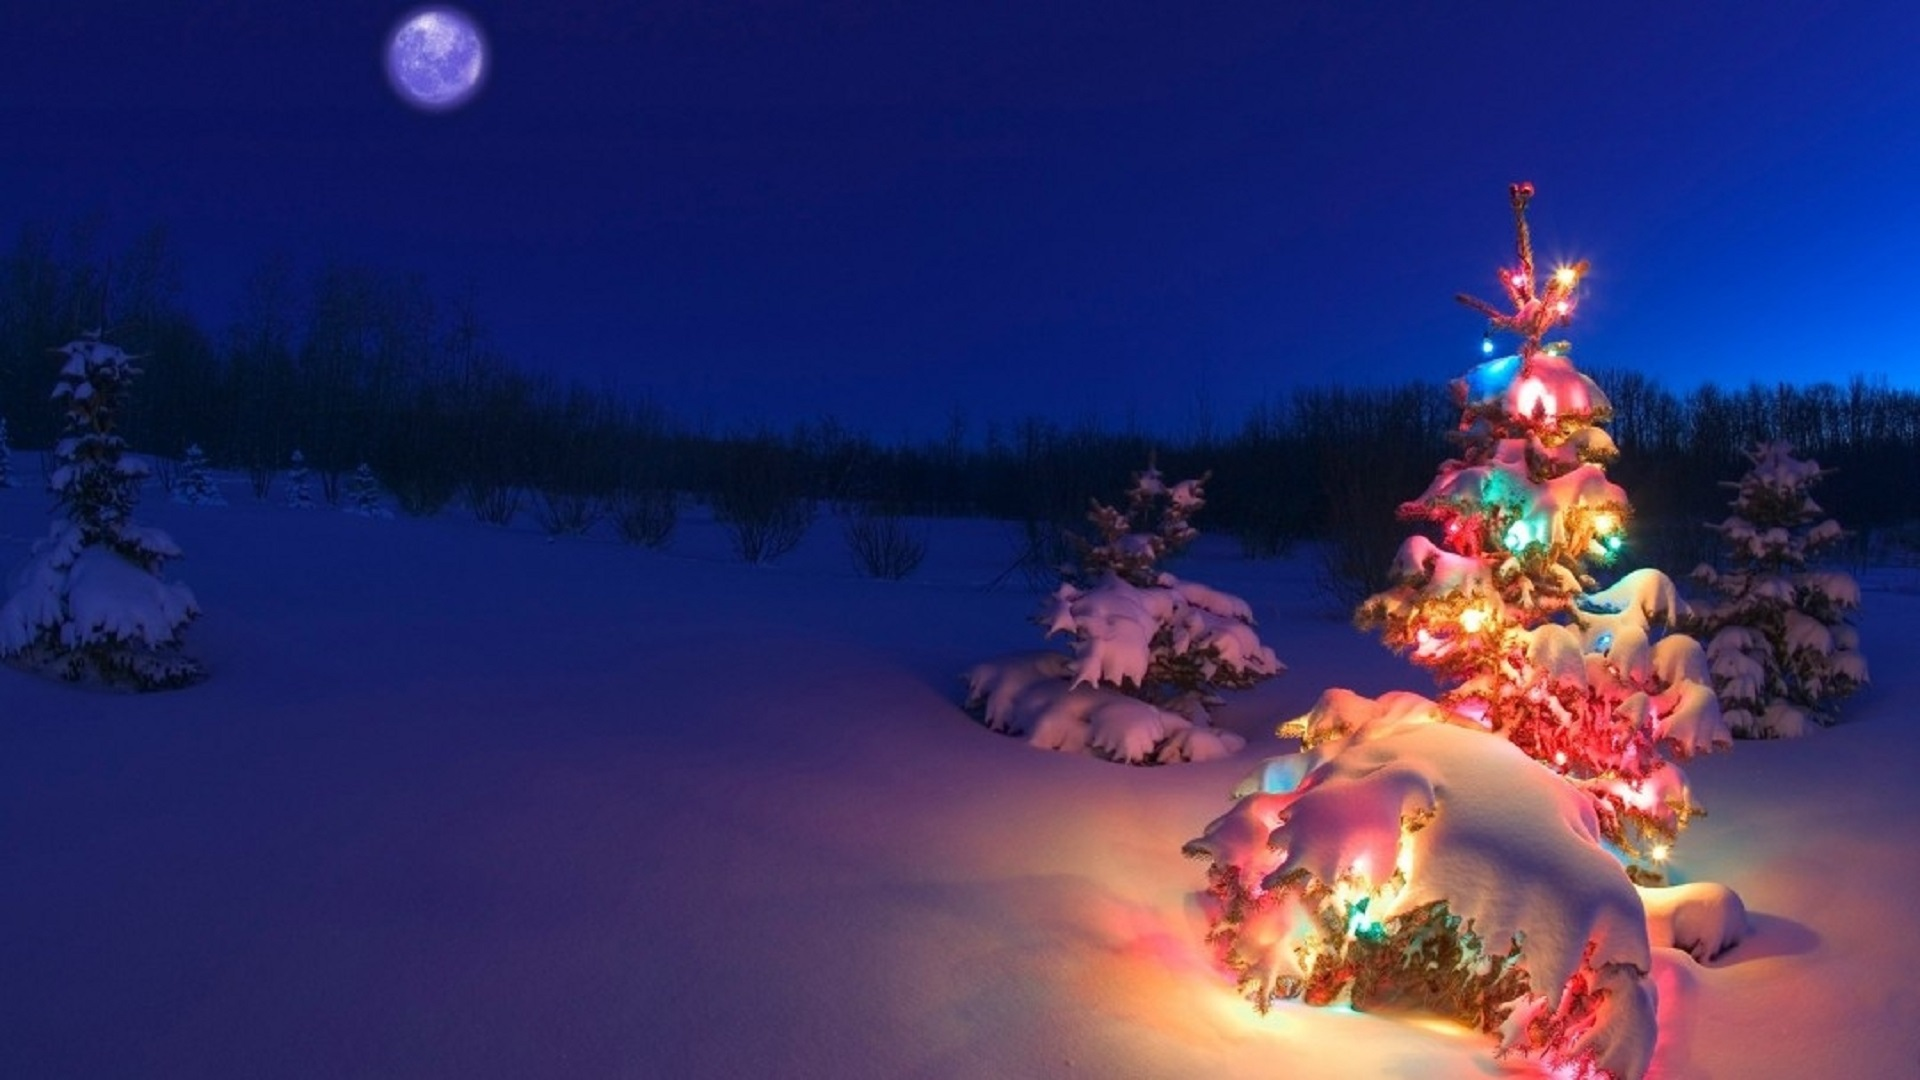 Collection-Of-Christmas-Tree-HD-1920x1080-See-more-on-Classy-Bro-wallpaper-wpc9003647